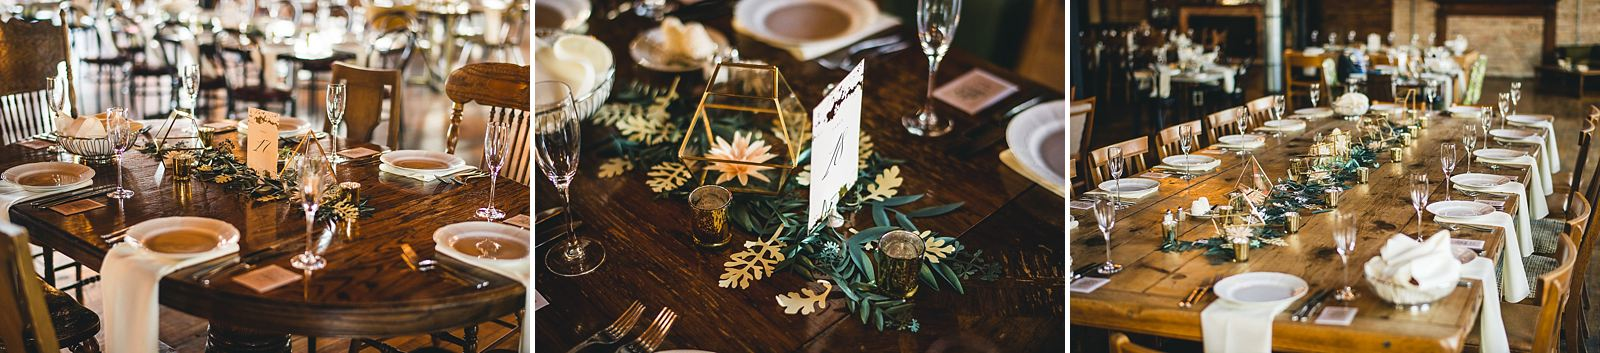 36 reception decor at salvage one wedding - Salvage One Wedding // Pearl + Ken